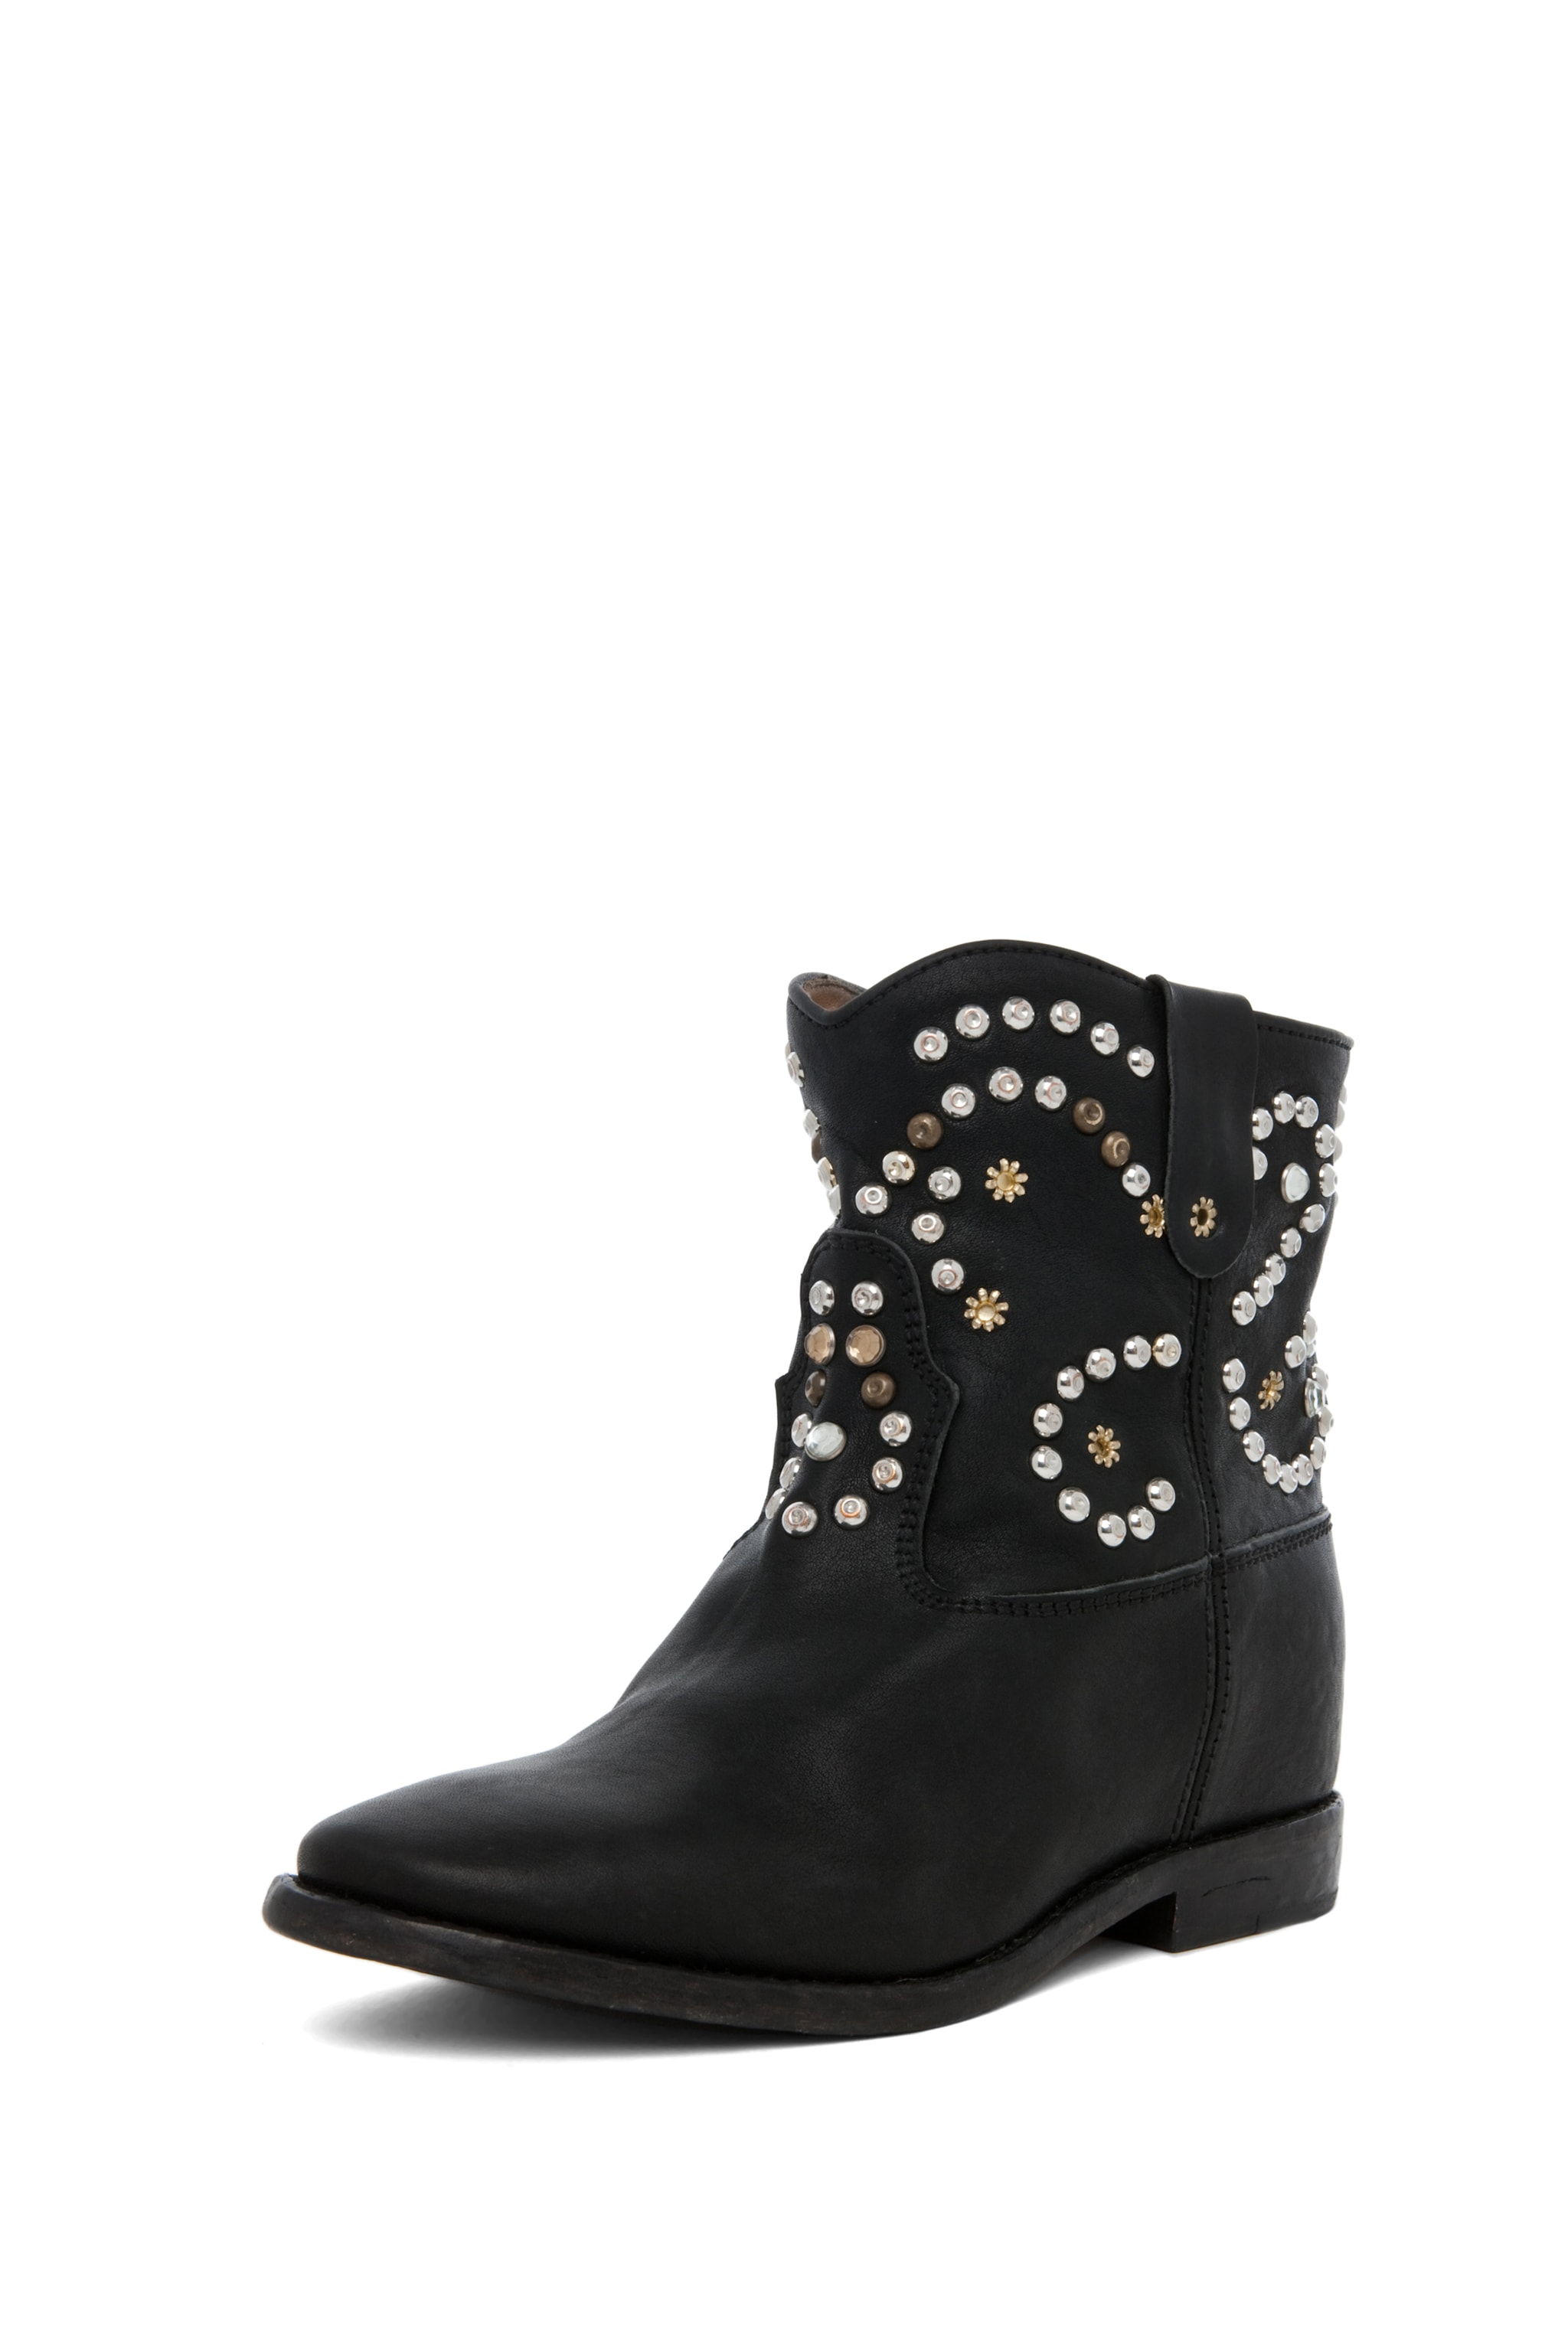 Image 5 of Isabel Marant Caleen Studded Bootie in Black